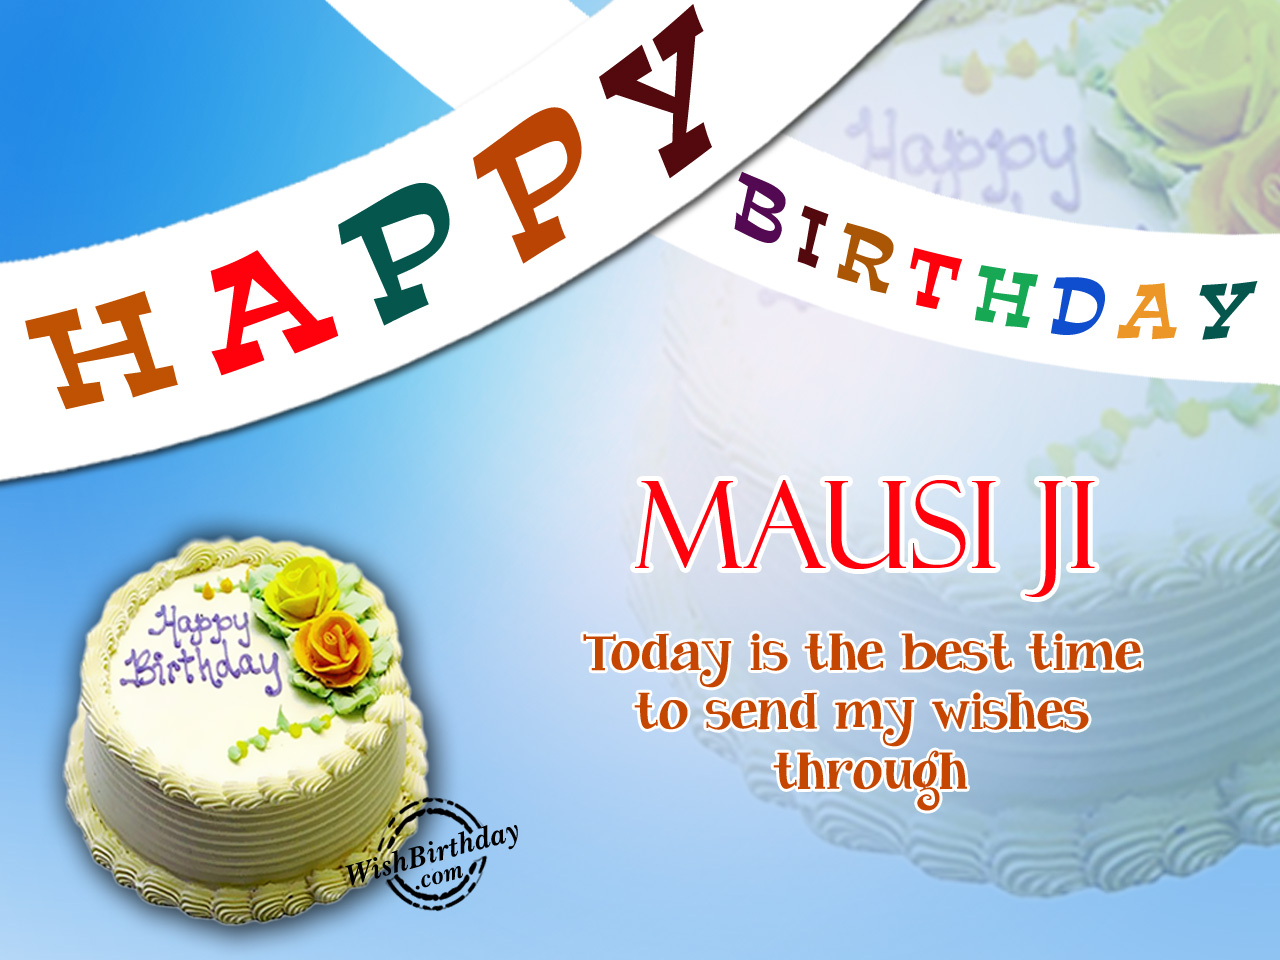 Birthday Wishes For Mausi Ji Birthday Images Pictures